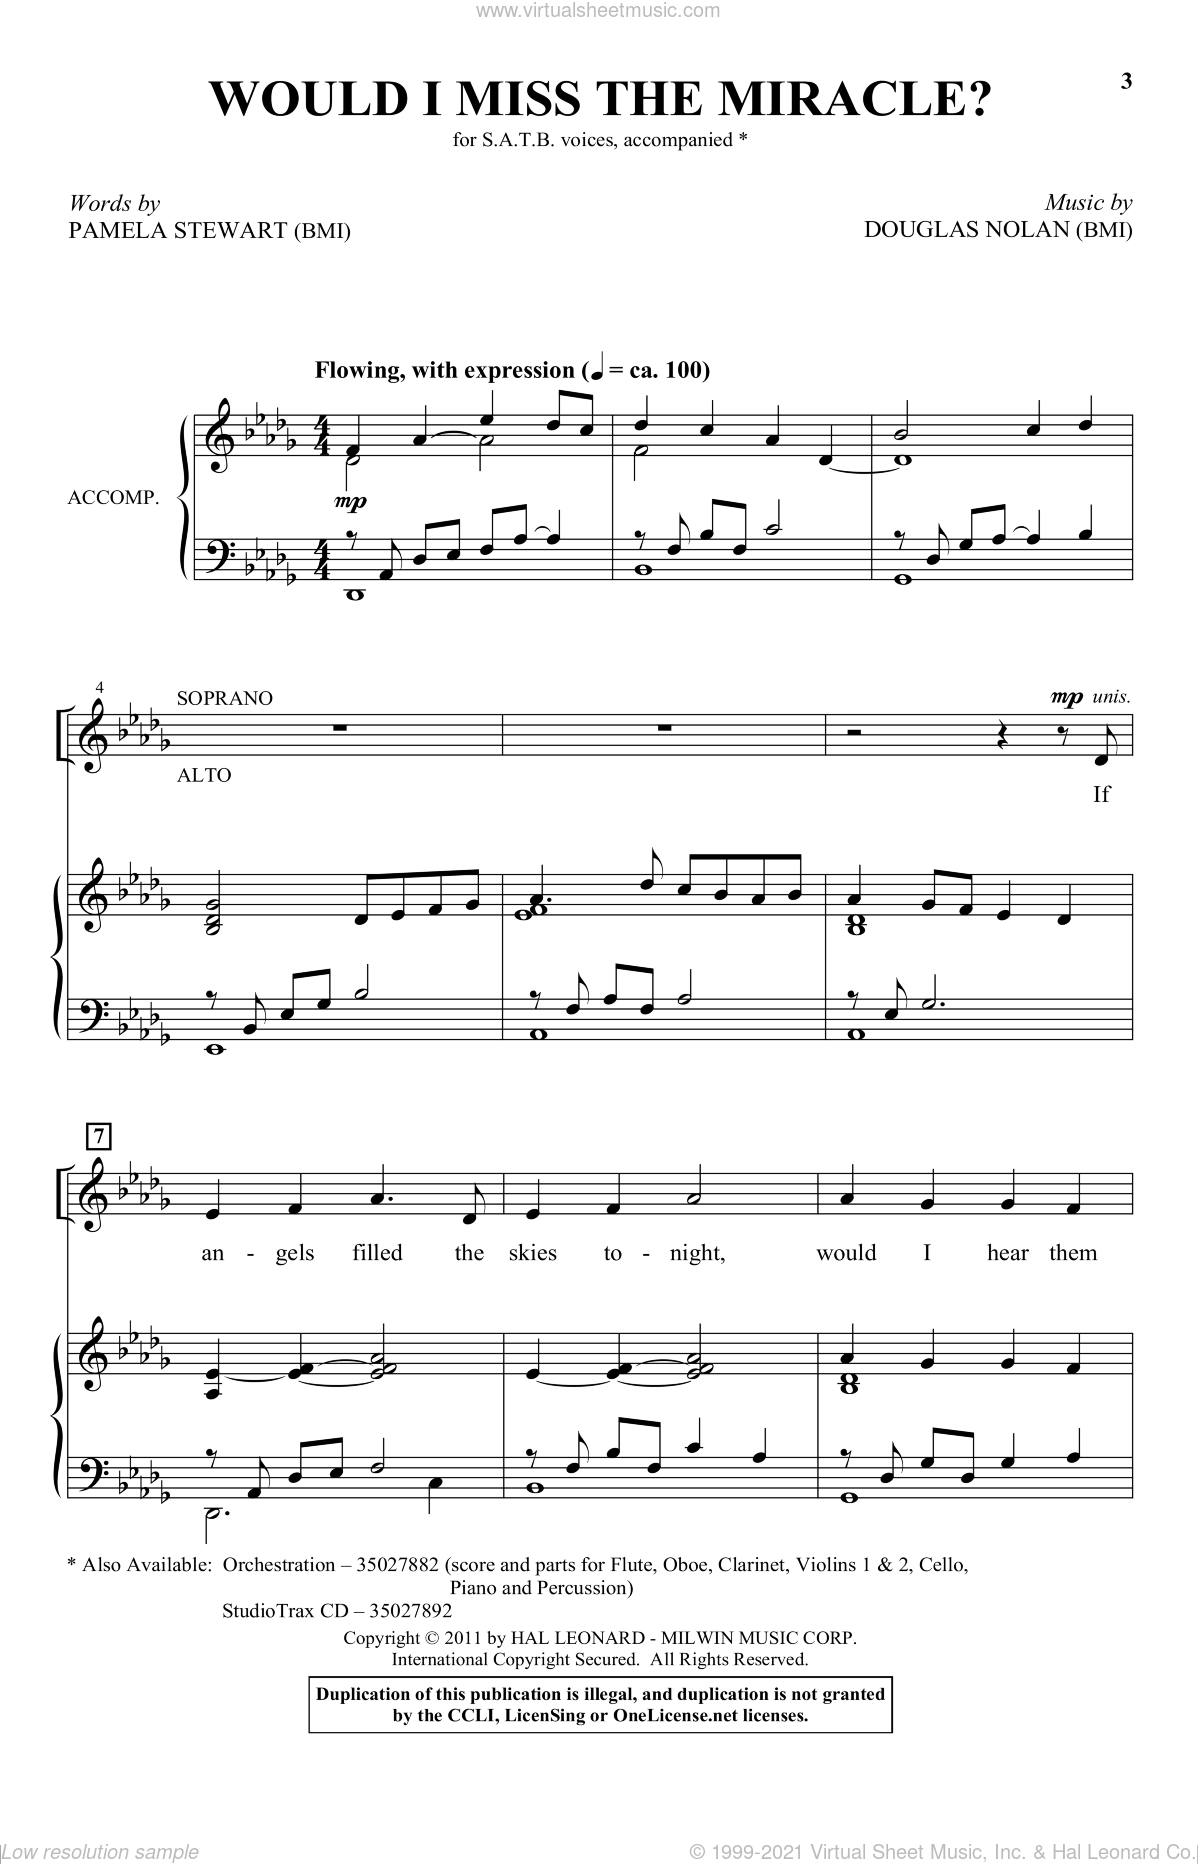 Would I Miss The Miracle? sheet music for choir (SATB: soprano, alto, tenor, bass) by Douglas Nolan and Pamela Stewart, intermediate